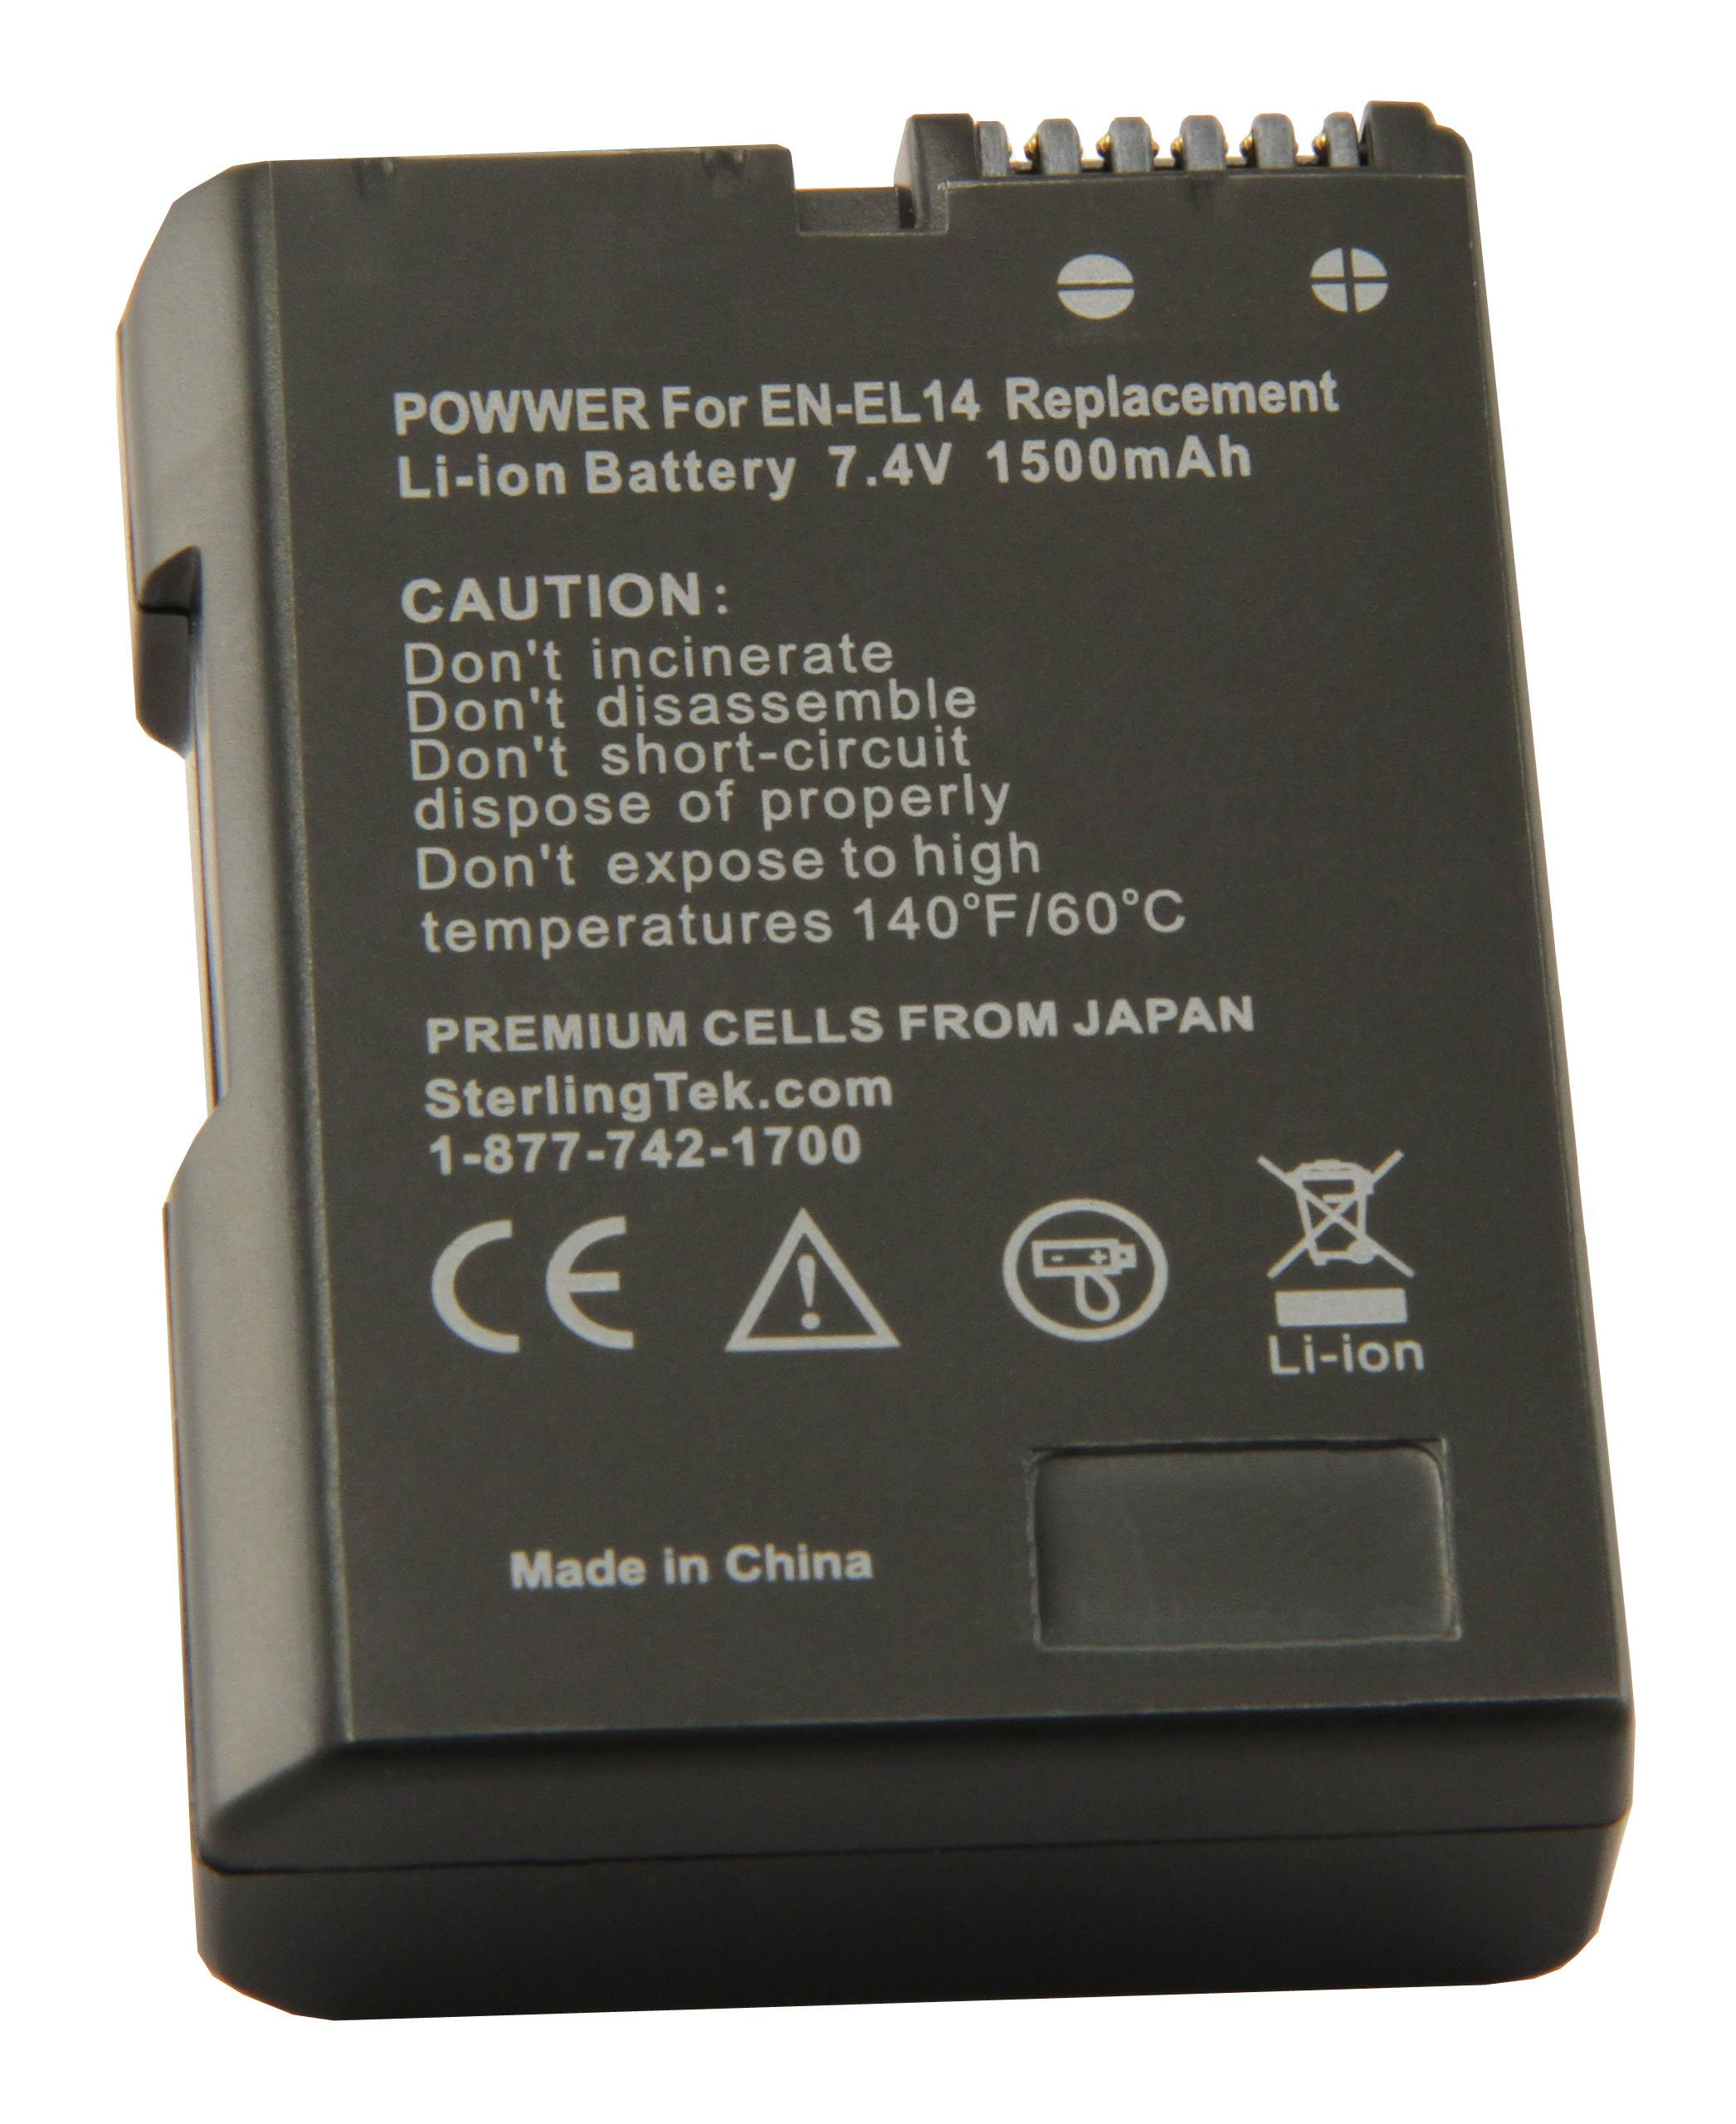 STK EN-EL14 EN-EL14a Battery for Nikon D3400 D5600 D3500 D3200 D3300 D5300 D5100 D3100 D5200 Cameras and Grips by STK